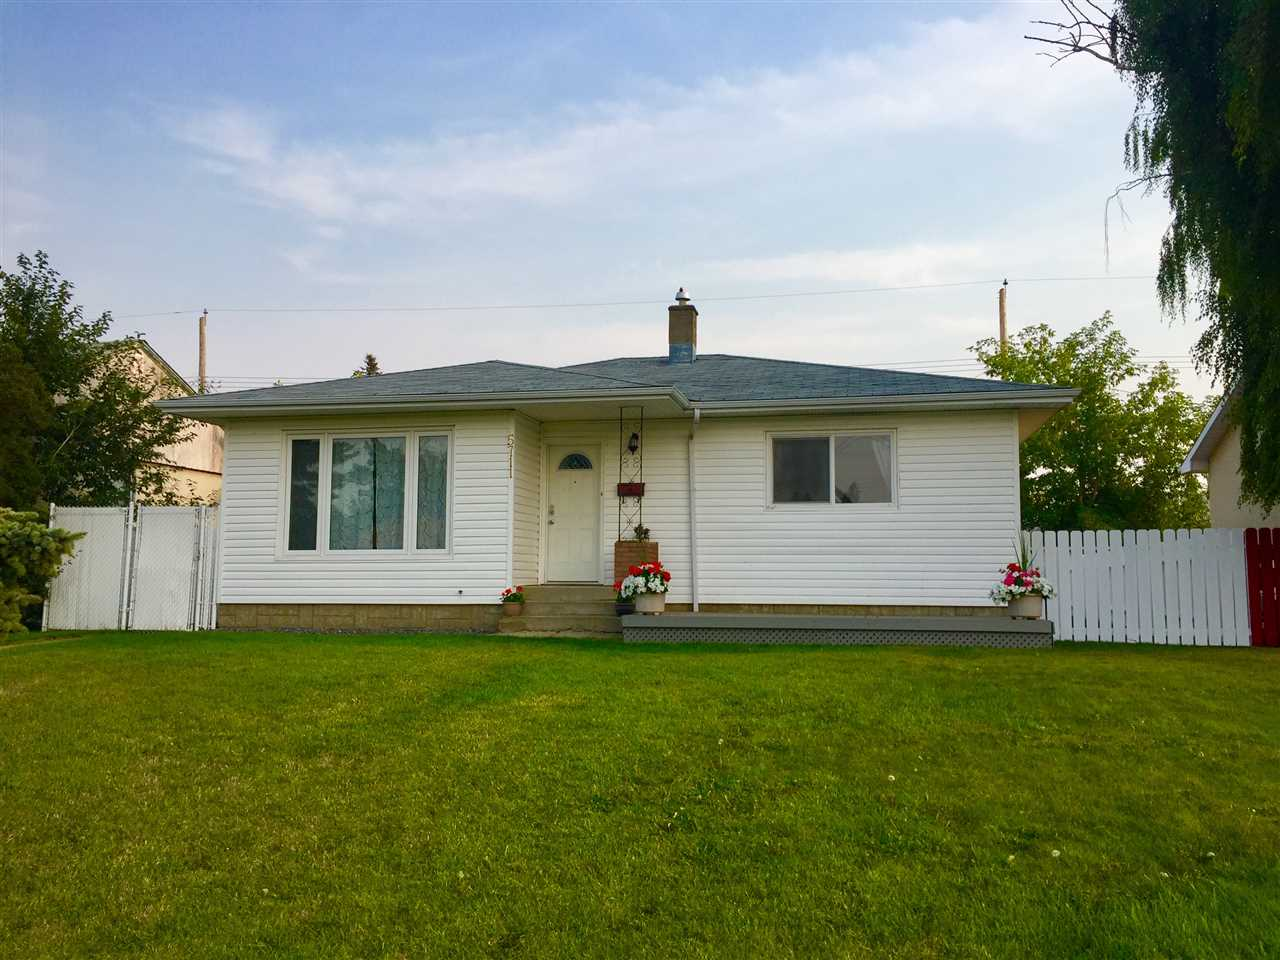 Main Photo: 5711 102A Avenue in Edmonton: Zone 19 House for sale : MLS® # E4075775